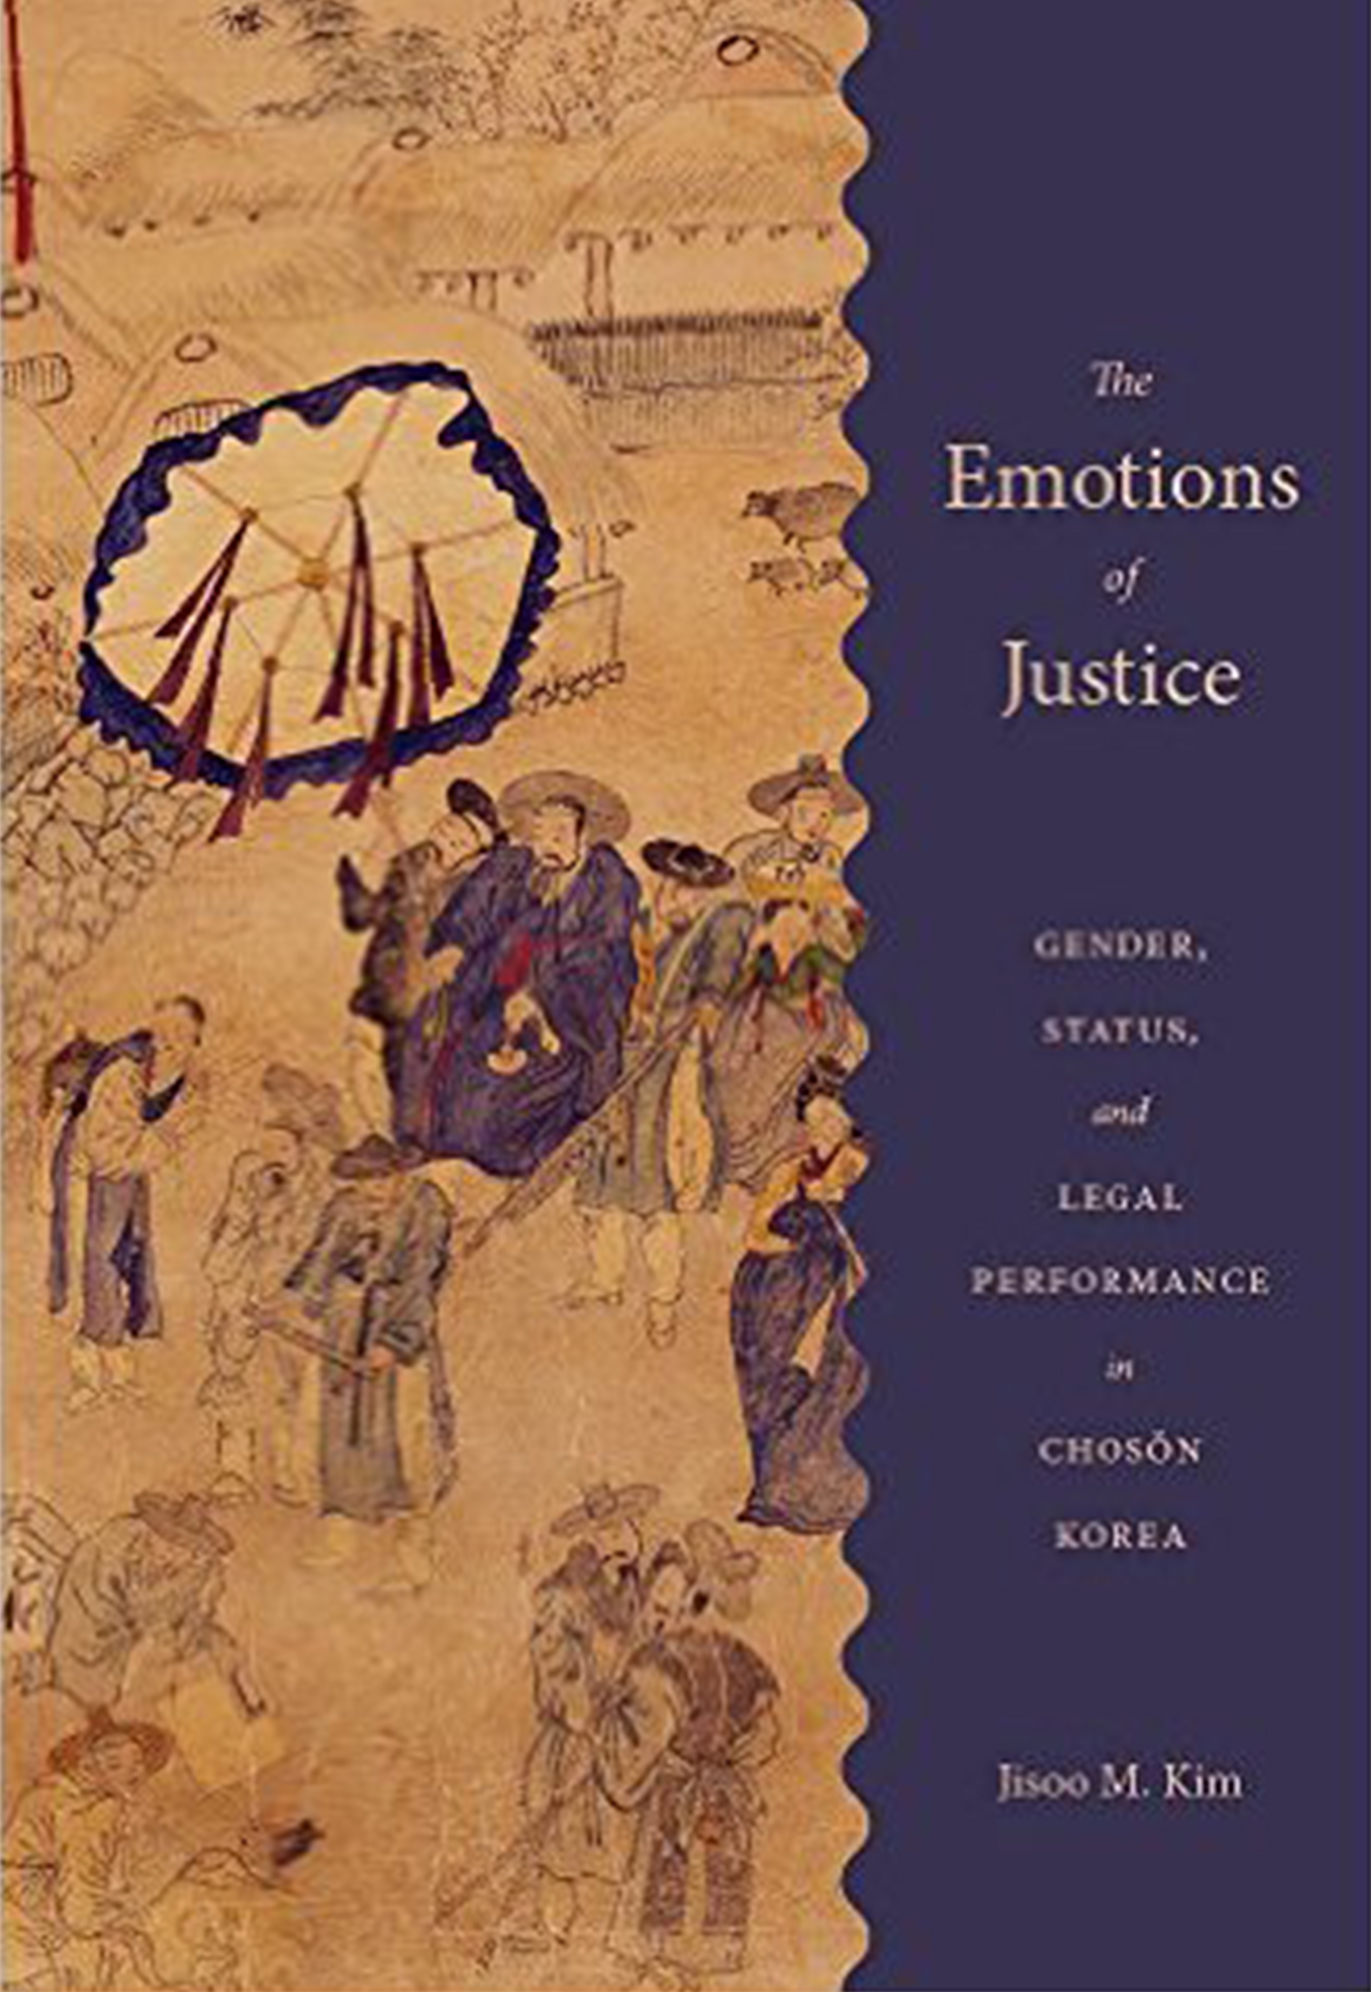 book cover: The Emotions of Justice, Gender, Status, and Legal Performance in Choson Korea, Jisoo M. Kim. Korean Figures talk, sit, work and walk through a town